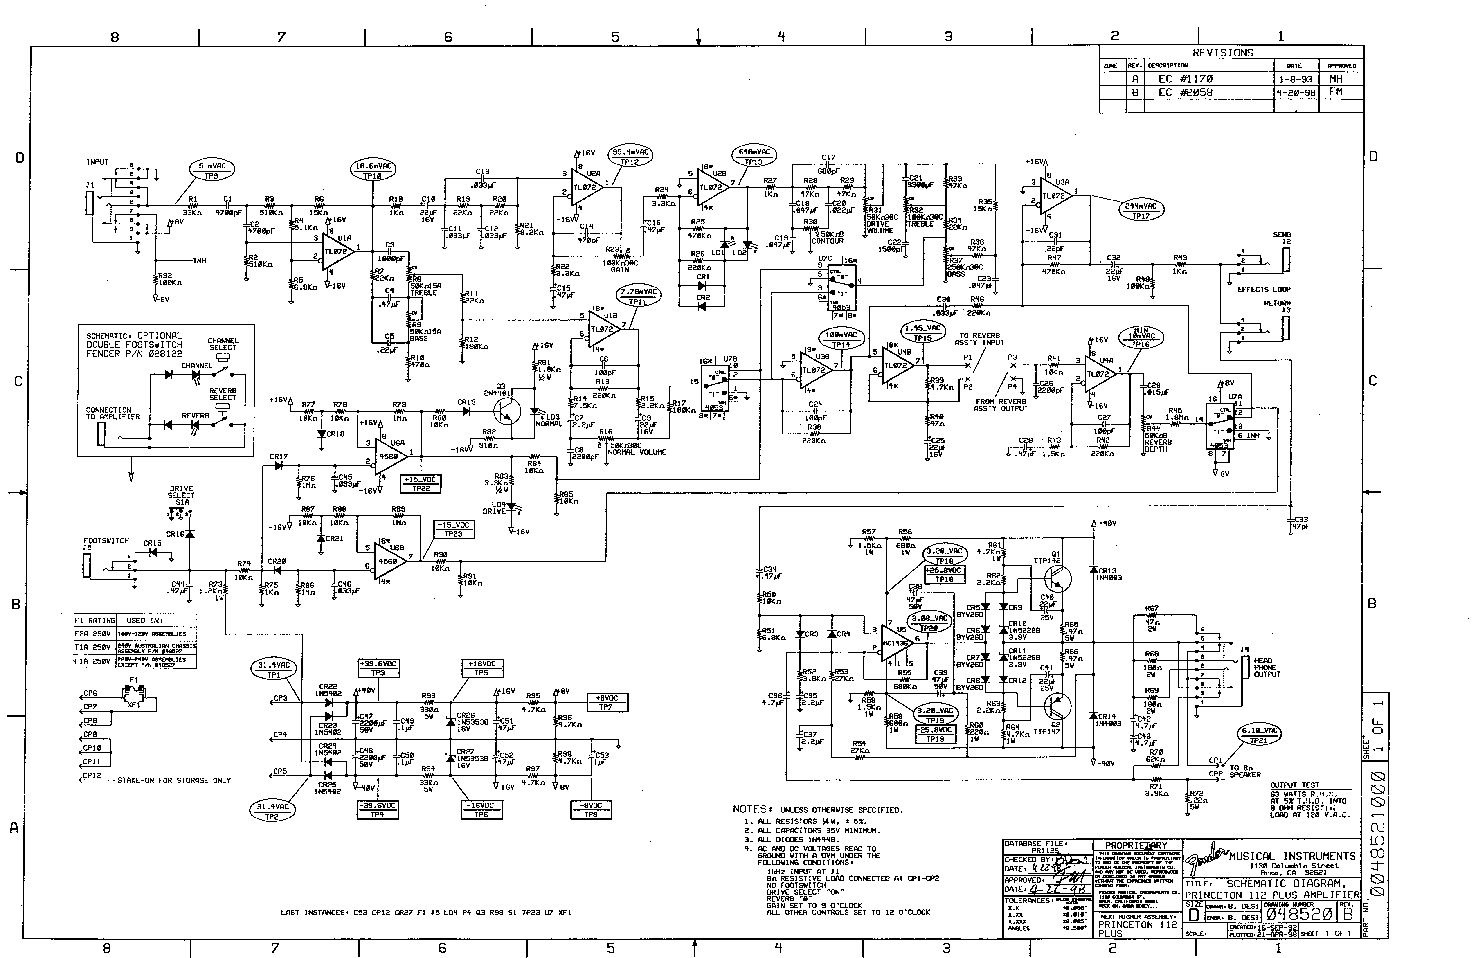 Fender Mustang Schematics Block And Schematic Diagrams Guitar Wiring Diagram Princeton 112 Plus Sch Service Manual Download Rh Elektrotanya Com Jaguar Super Champ Xd